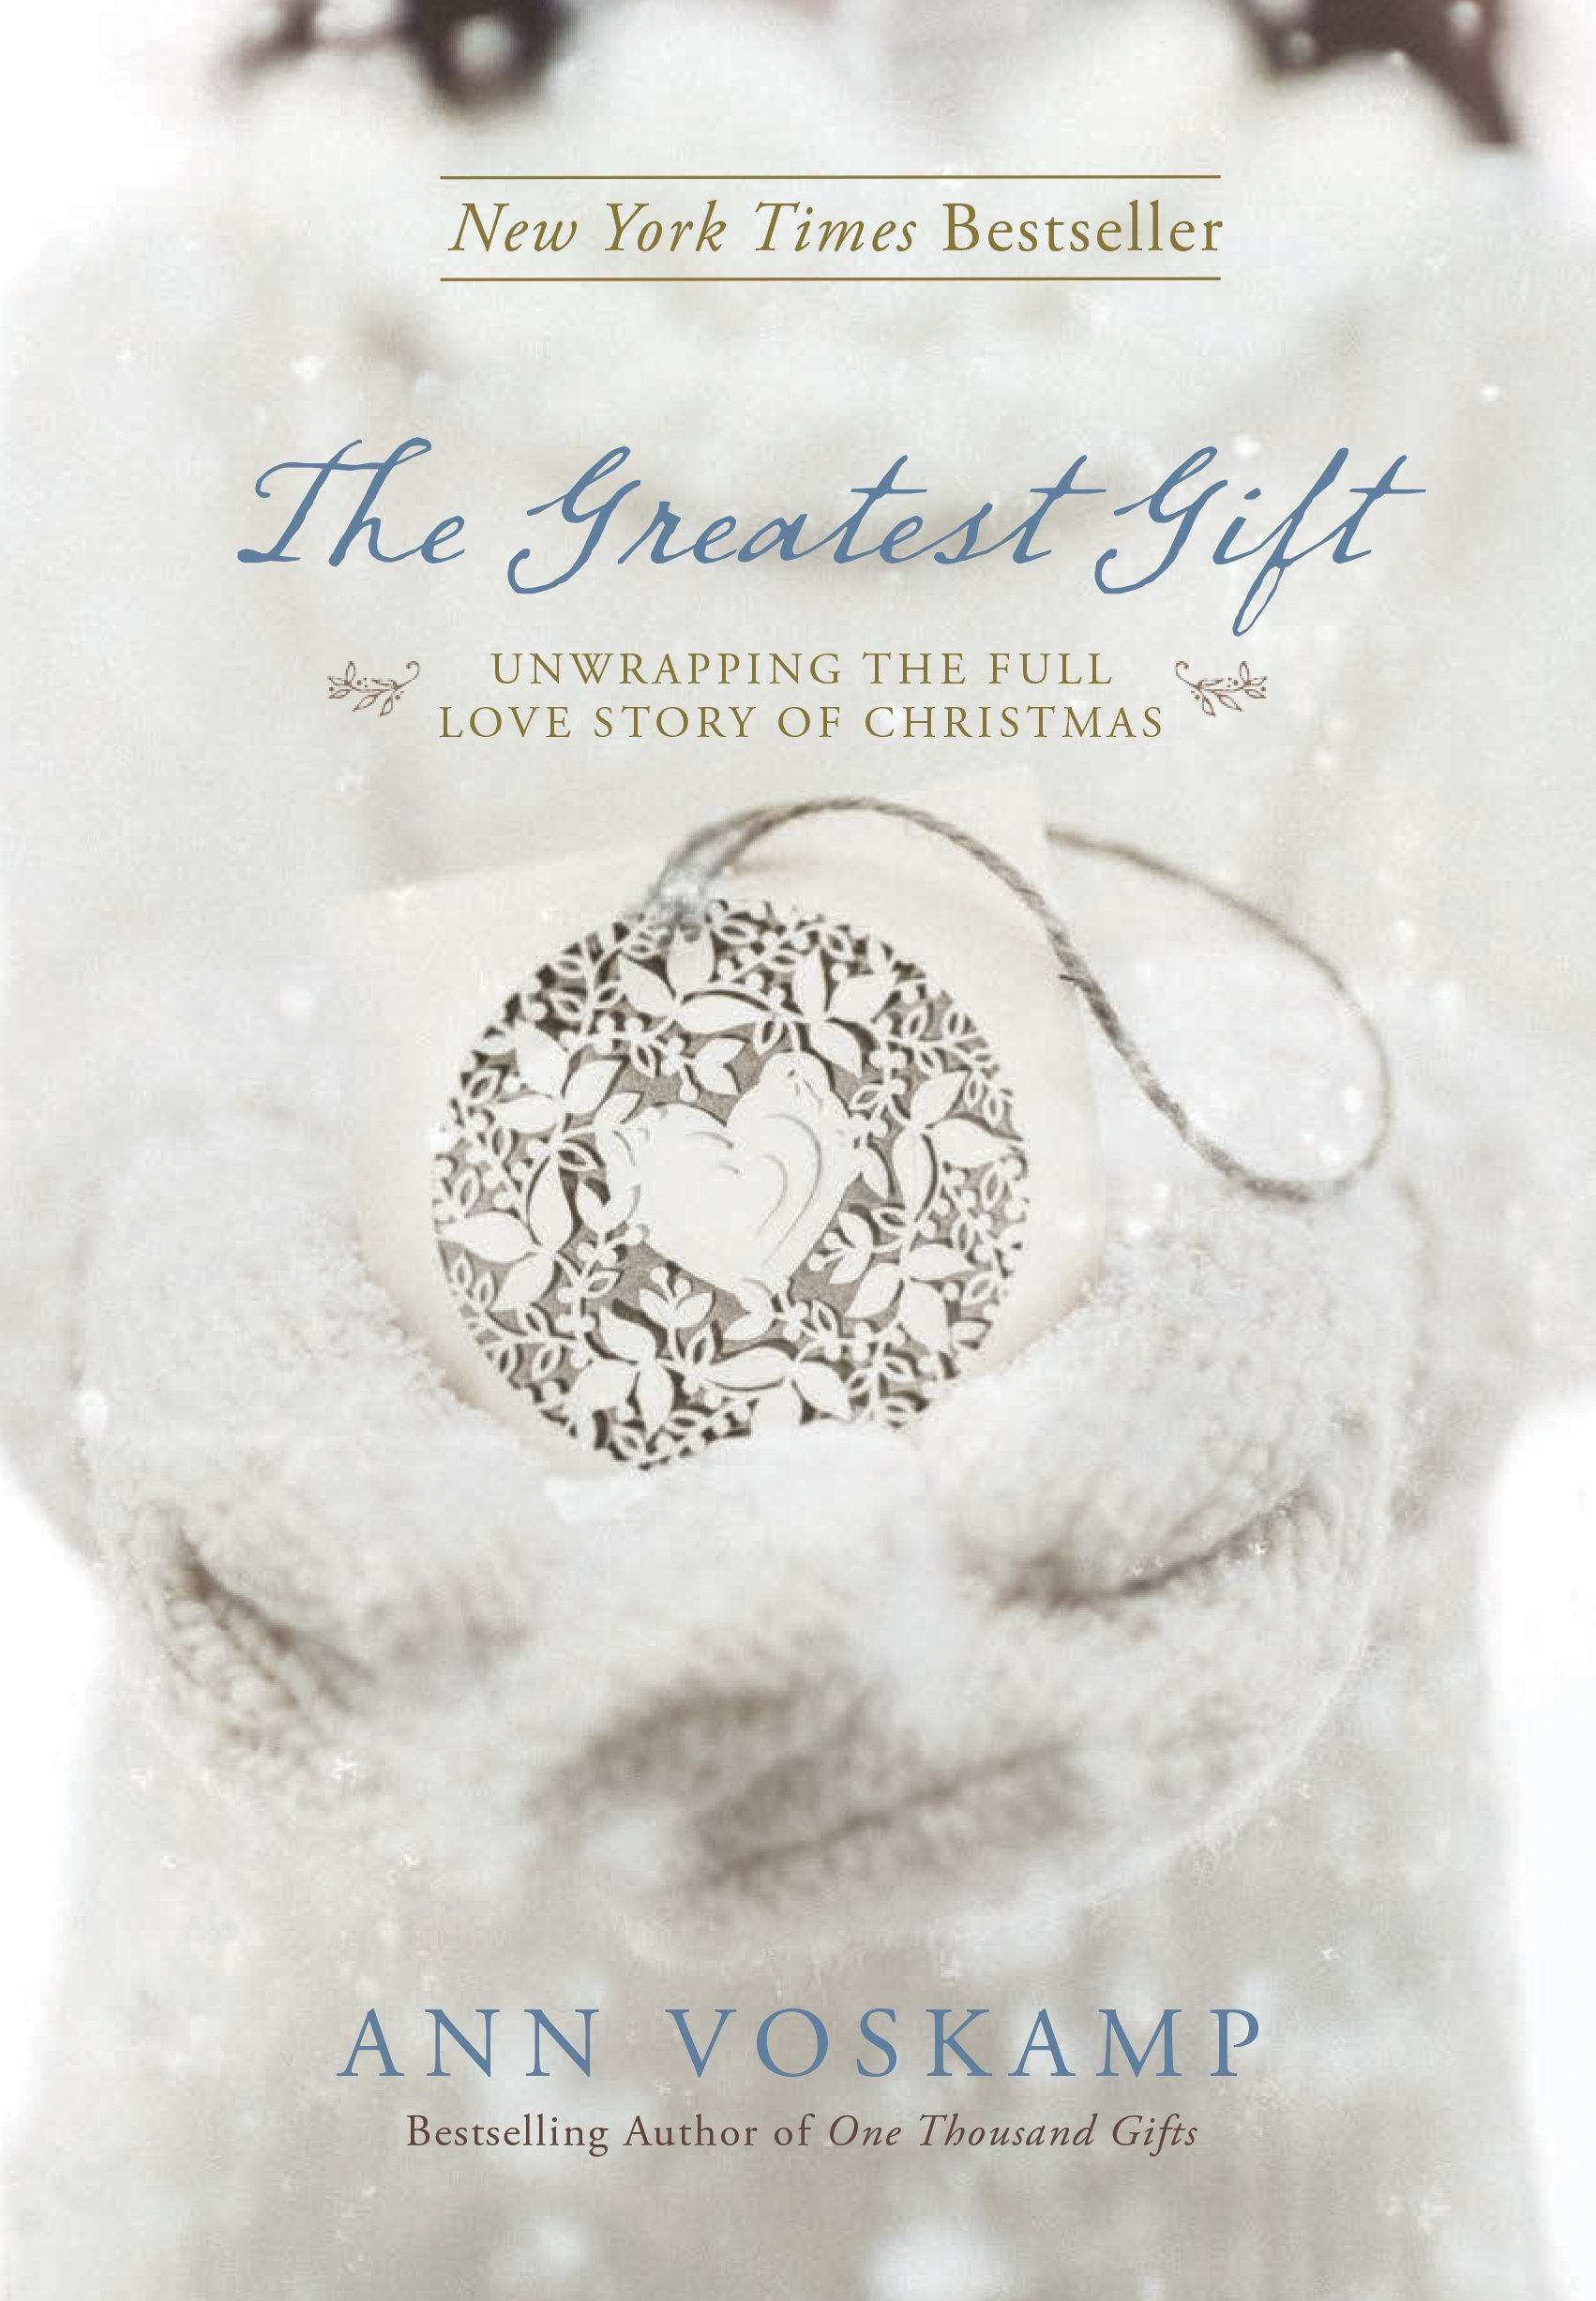 the greatest gift unwrapping the full love story of christmas ann voskamp 8601421549028 amazoncom books - Best Gifts Christmas 2014